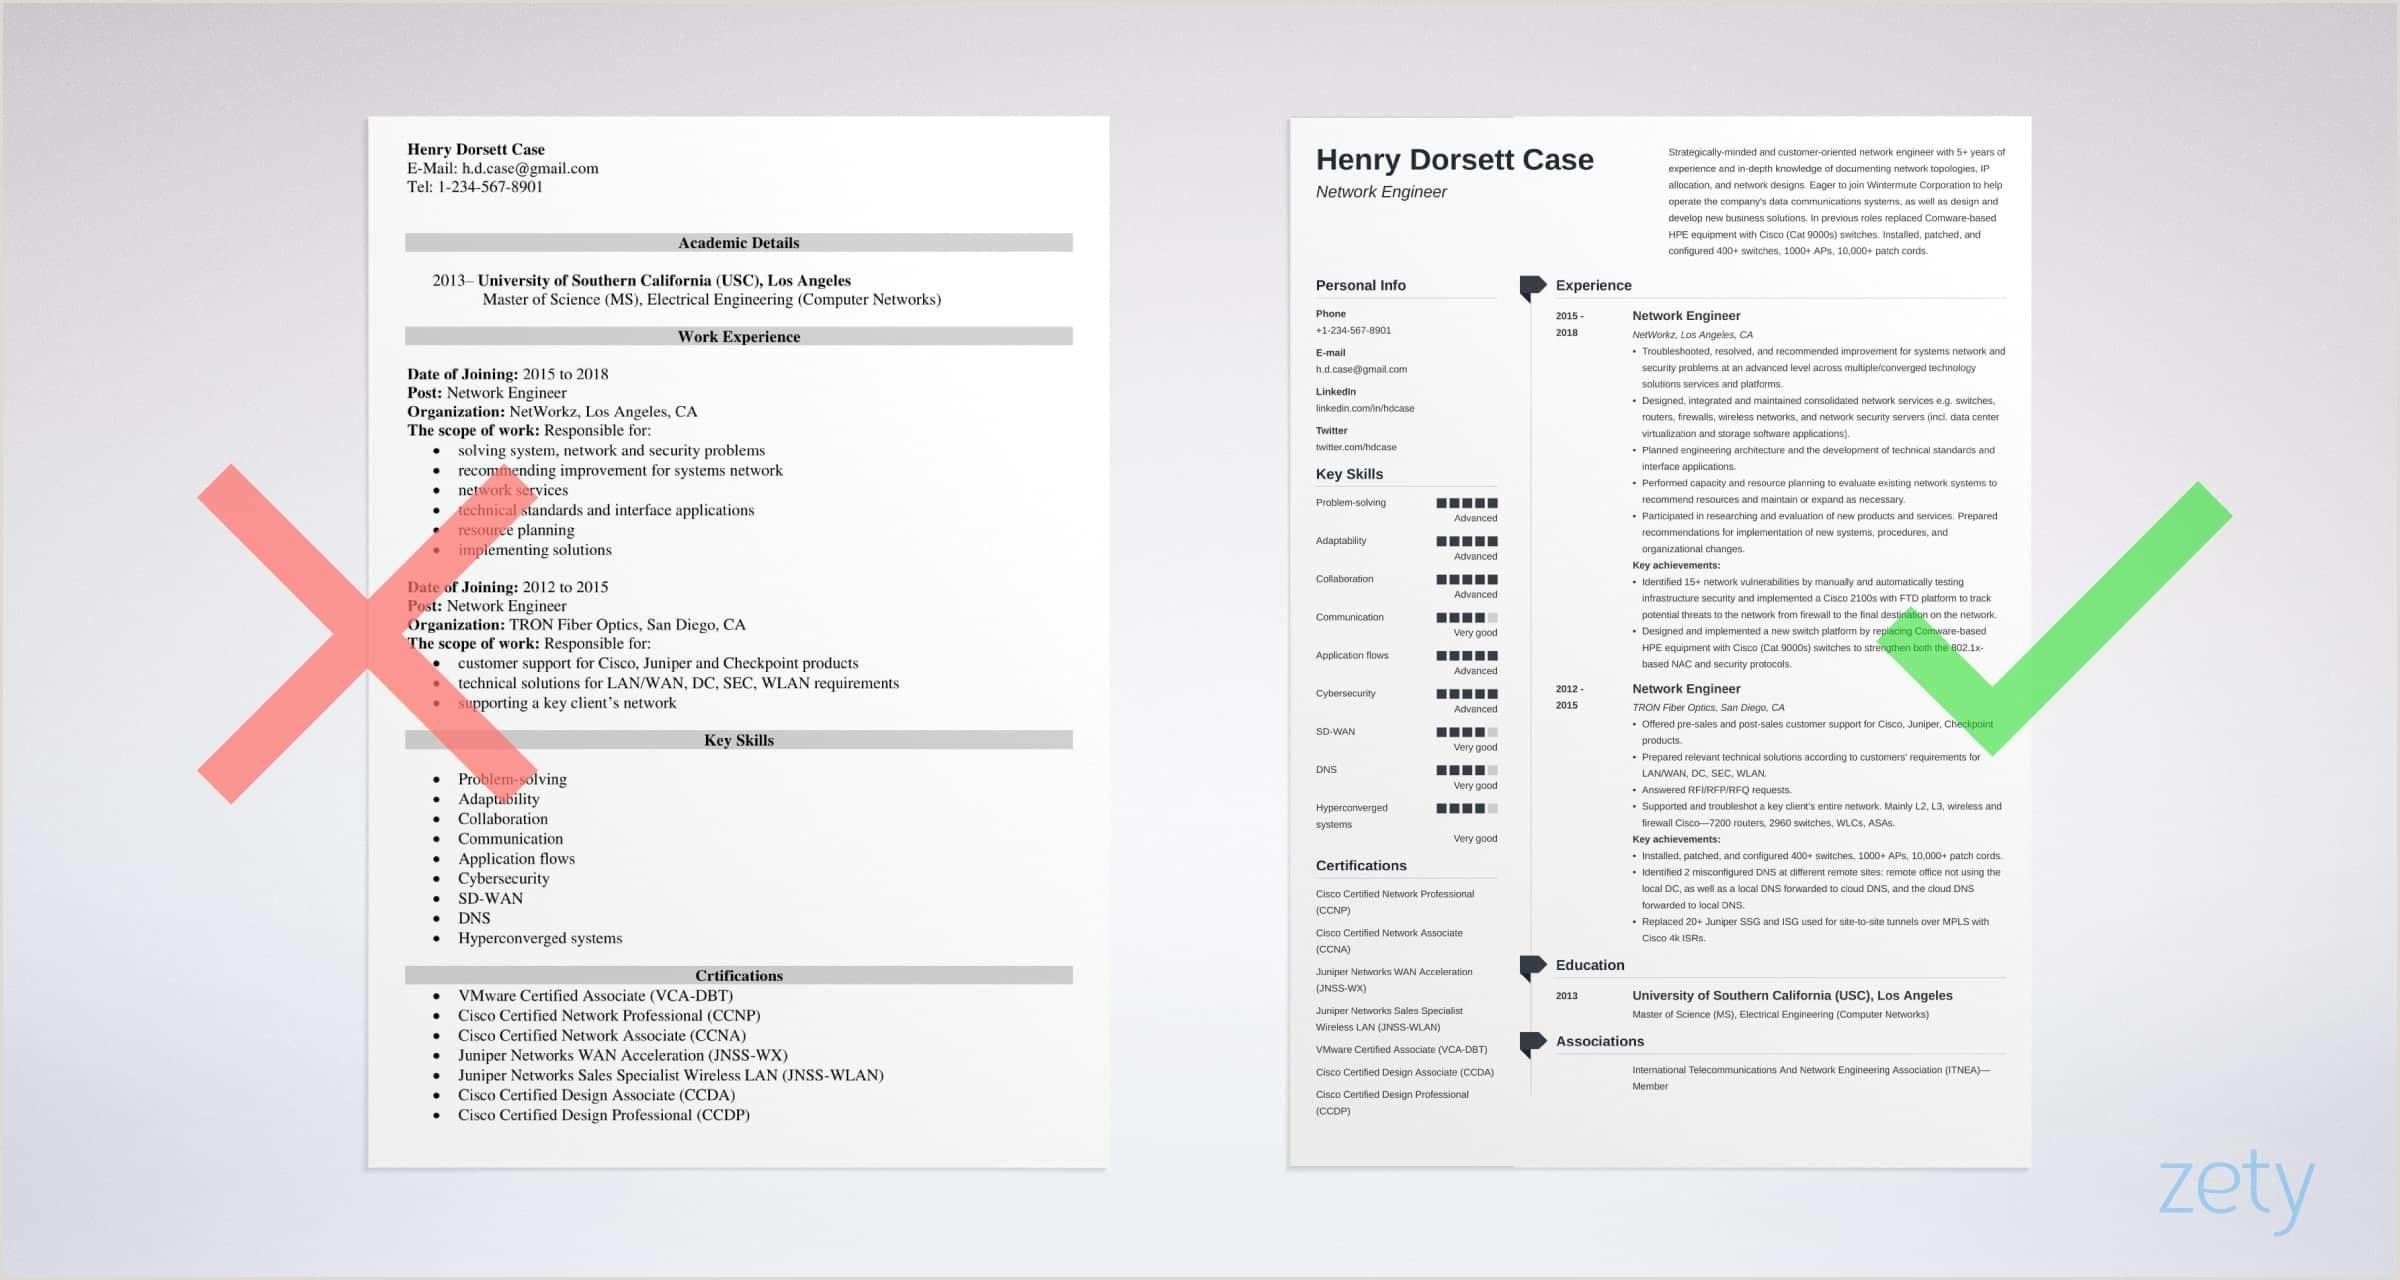 Mobile Application Developer Resume Network Engineer Resume Sample and Writing Guide [20 Examples]